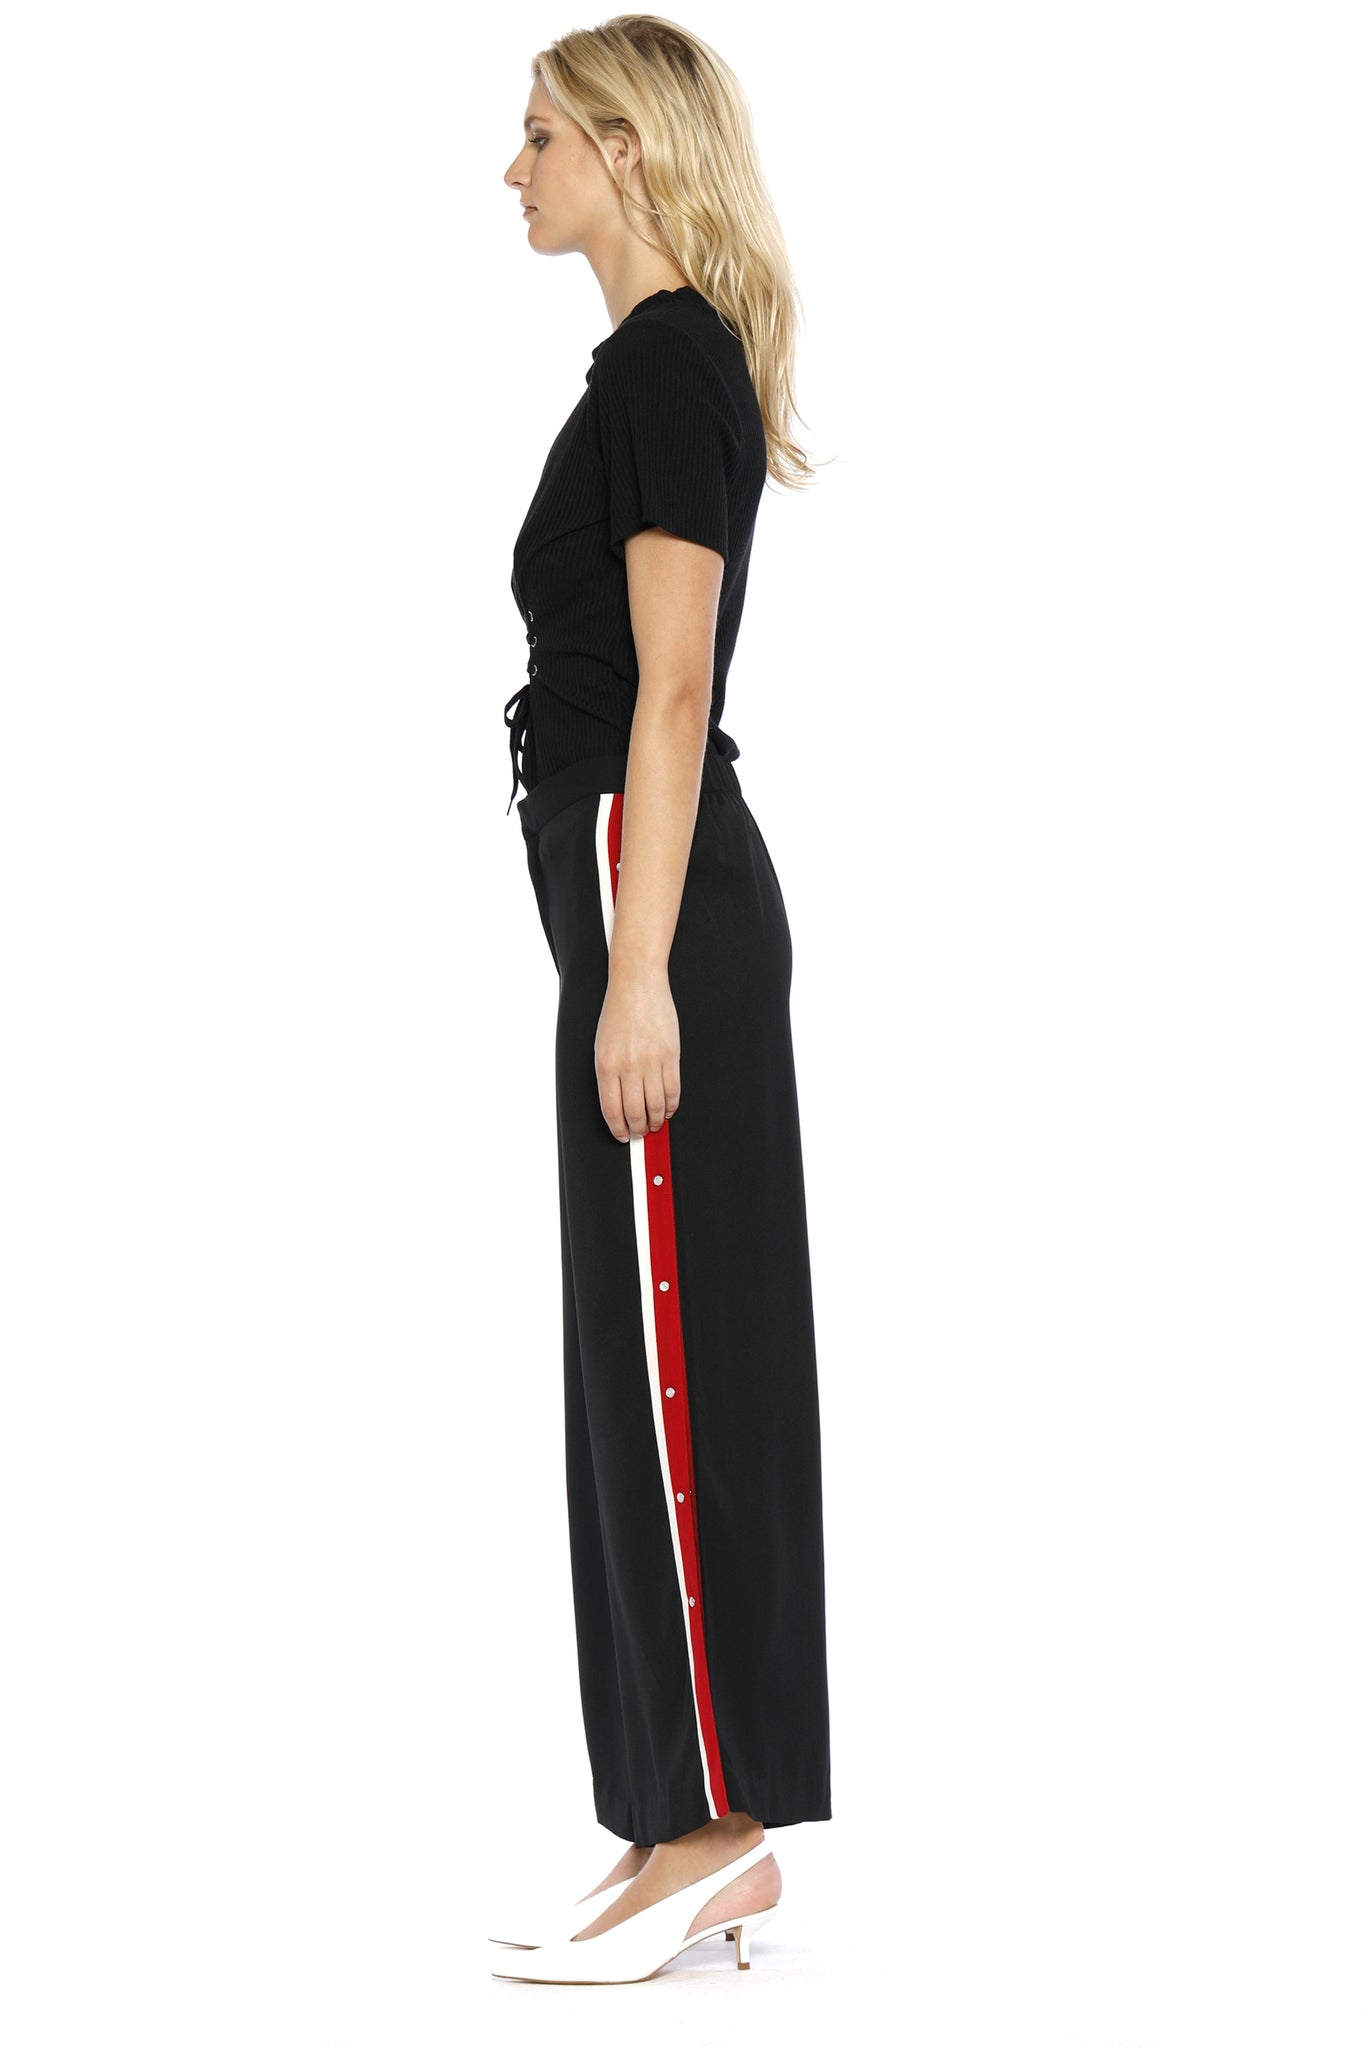 Side view of Maxine Pant, black retro pants with buttons on the side and a red stripe outlined with white borders on both sides, 100% Polyester and Machine-washable.